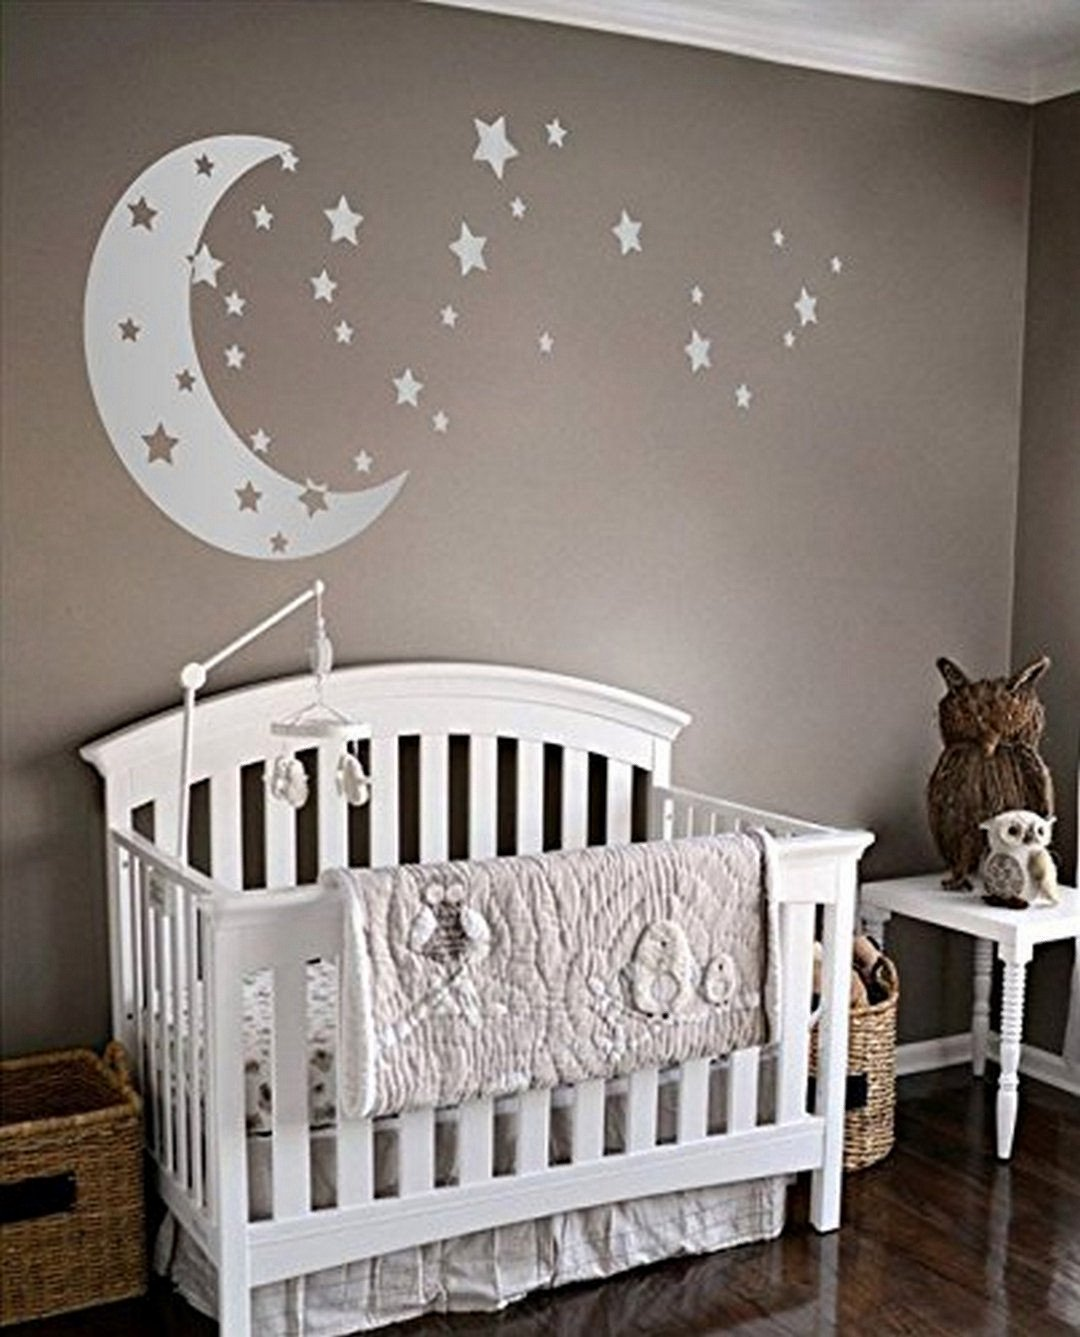 Baby Room Wall Decor Ideas Inspirational 38 Dazzling Moon and Stars Nursery Decoration Ideas Gorgeous Interior Ideas